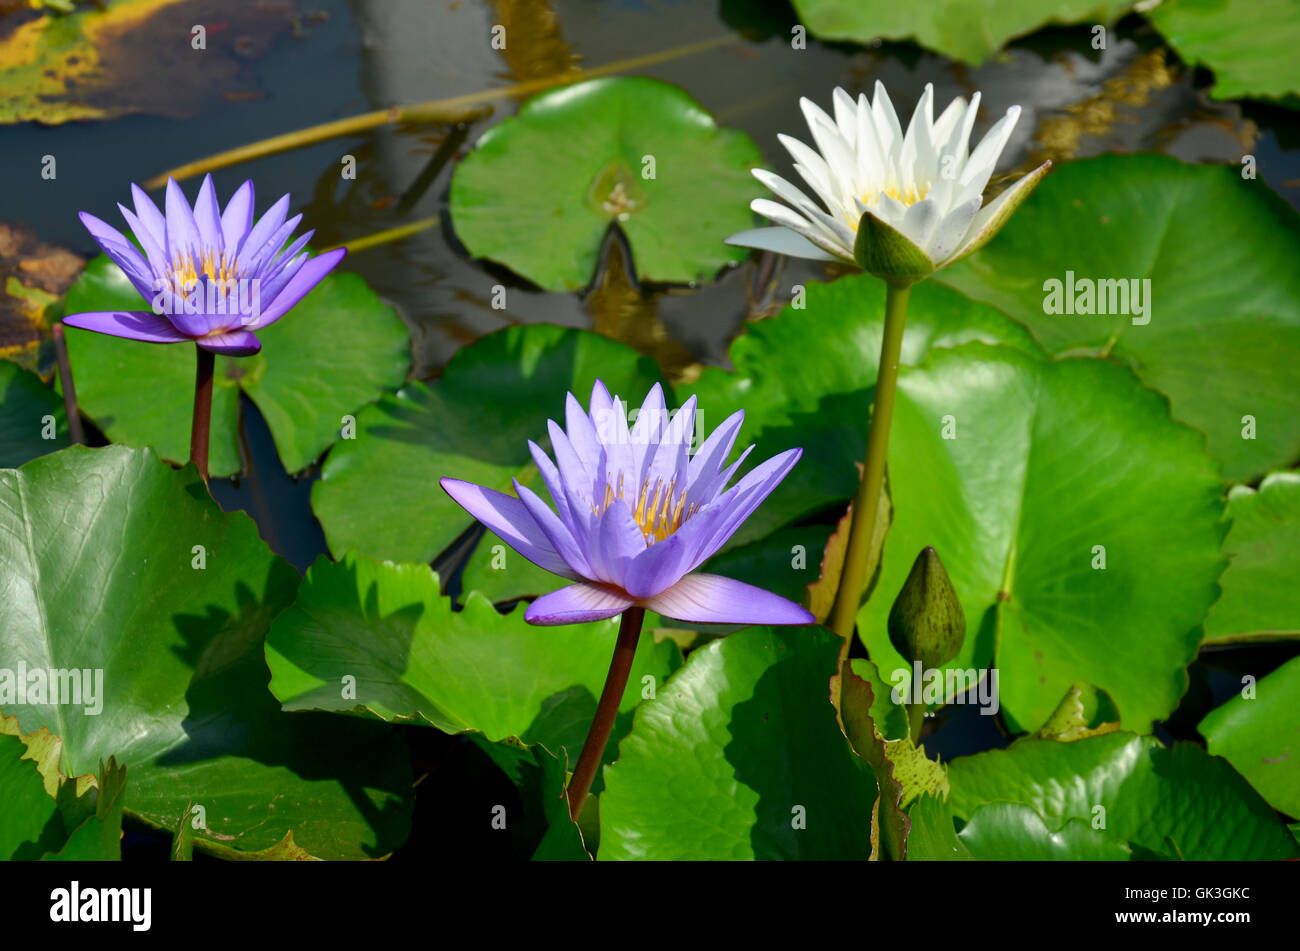 White lotus flower and violet water lily blossom with molly fish or white lotus flower and violet water lily blossom with molly fish or swordtail fishes swimming in water tank at garden izmirmasajfo Image collections